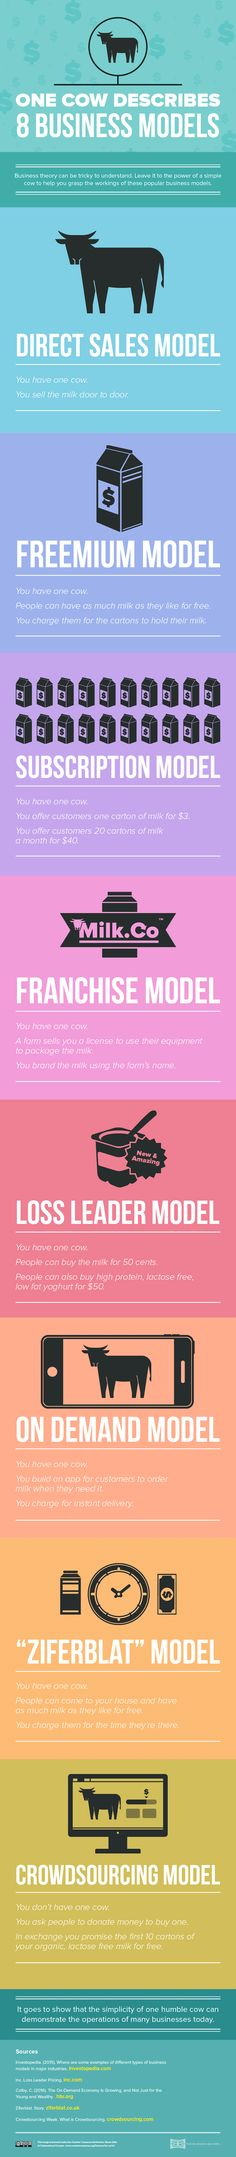 One Four-legged Cow = Eight Business Models - Infographic